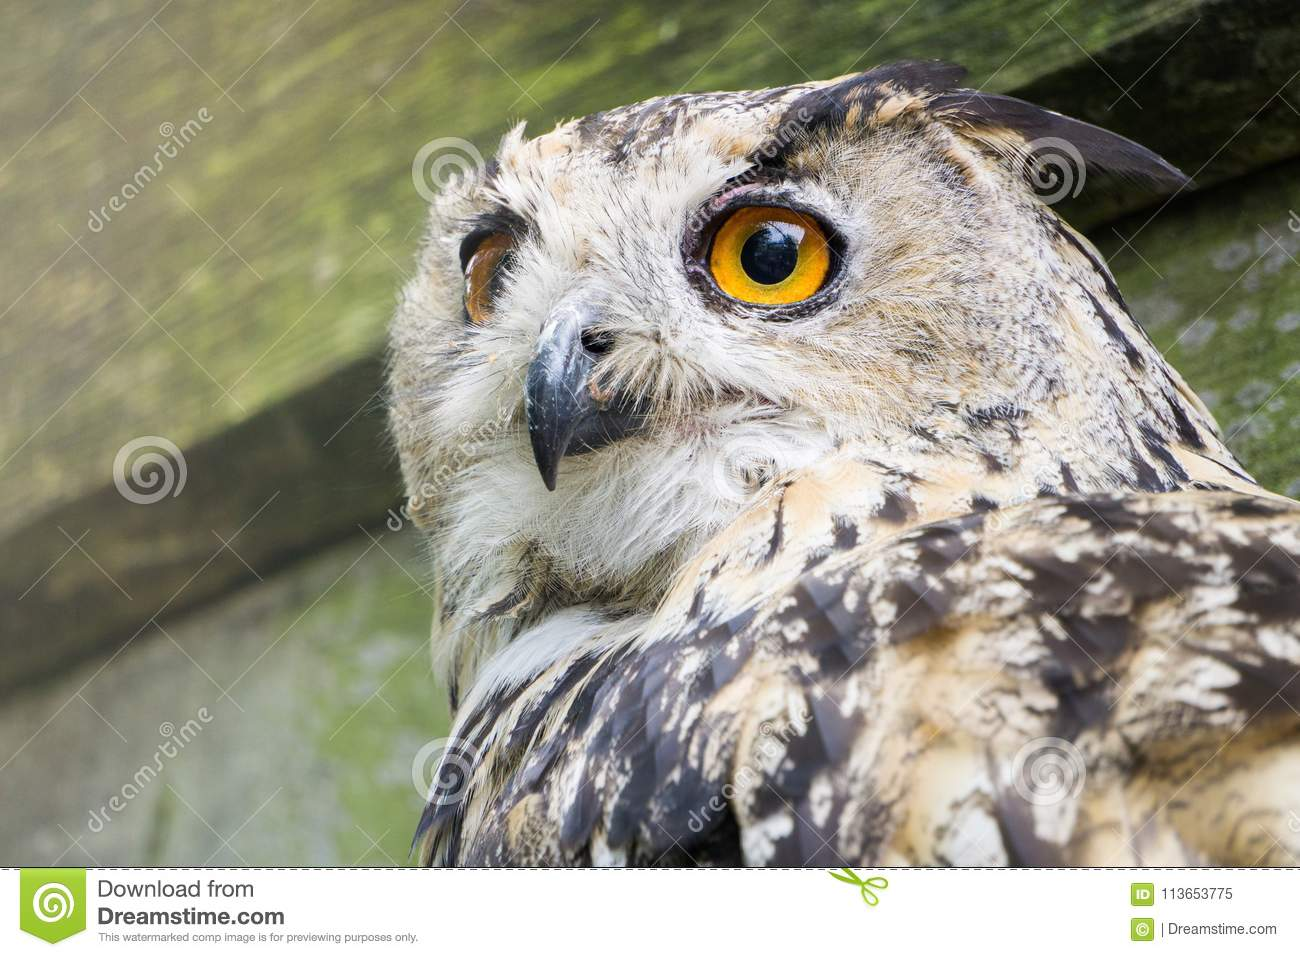 A big owl with ginger eyes sitting on a ledge in its wooden house in a zoo